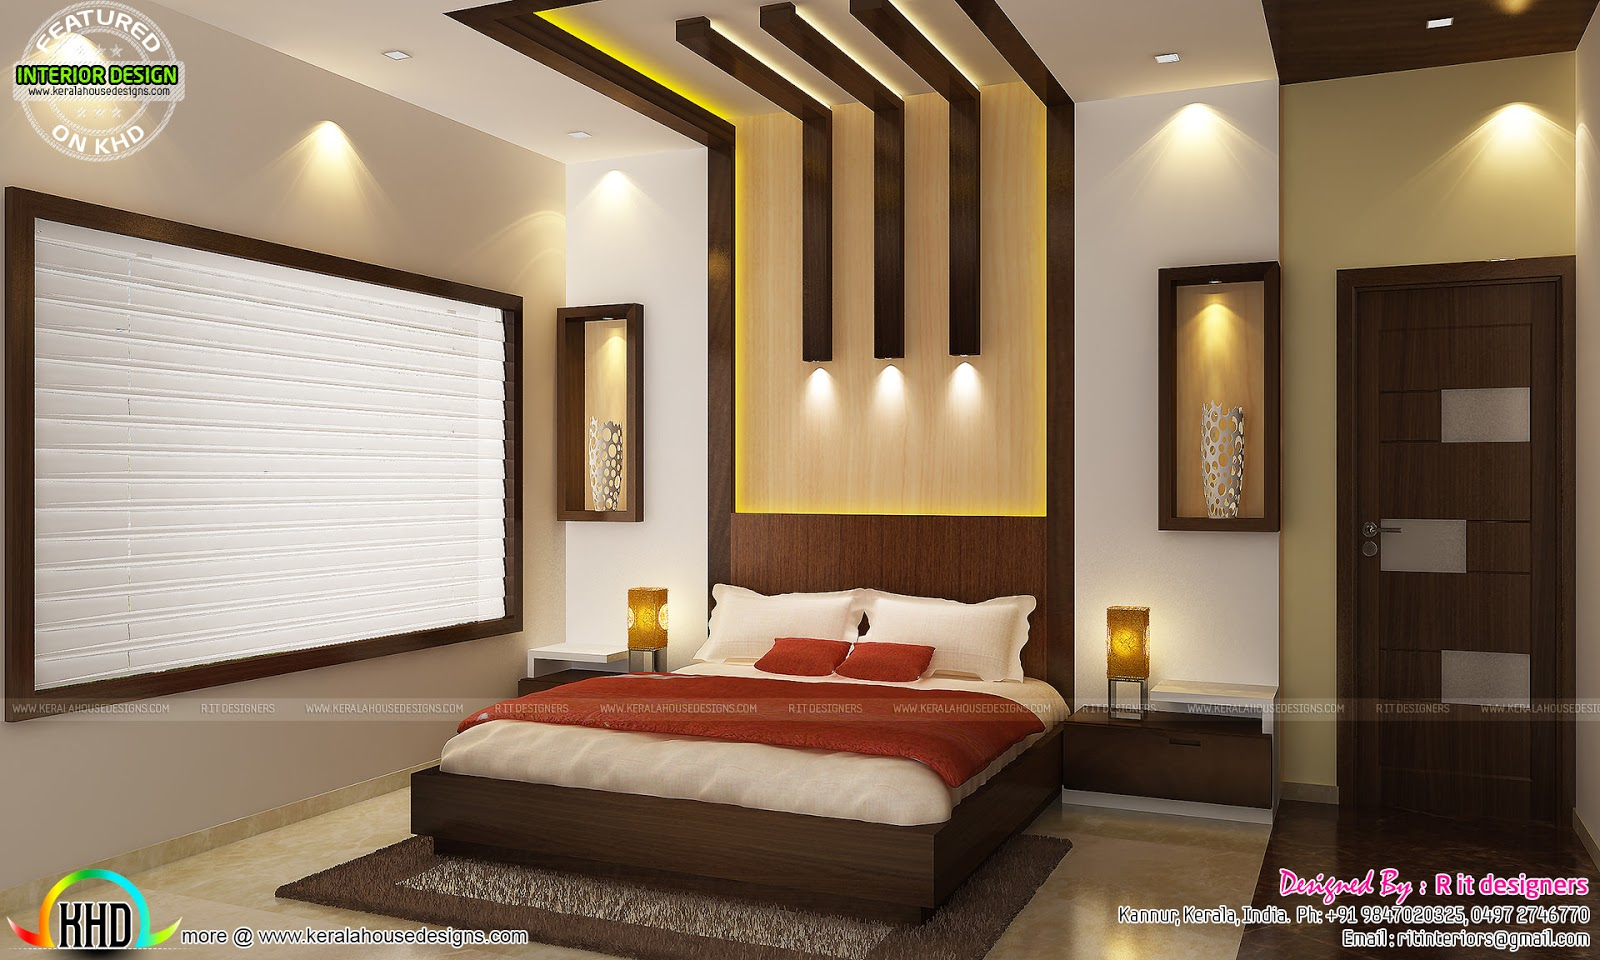 Kitchen living bedroom dining interior decor kerala for Bathroom interior design kerala